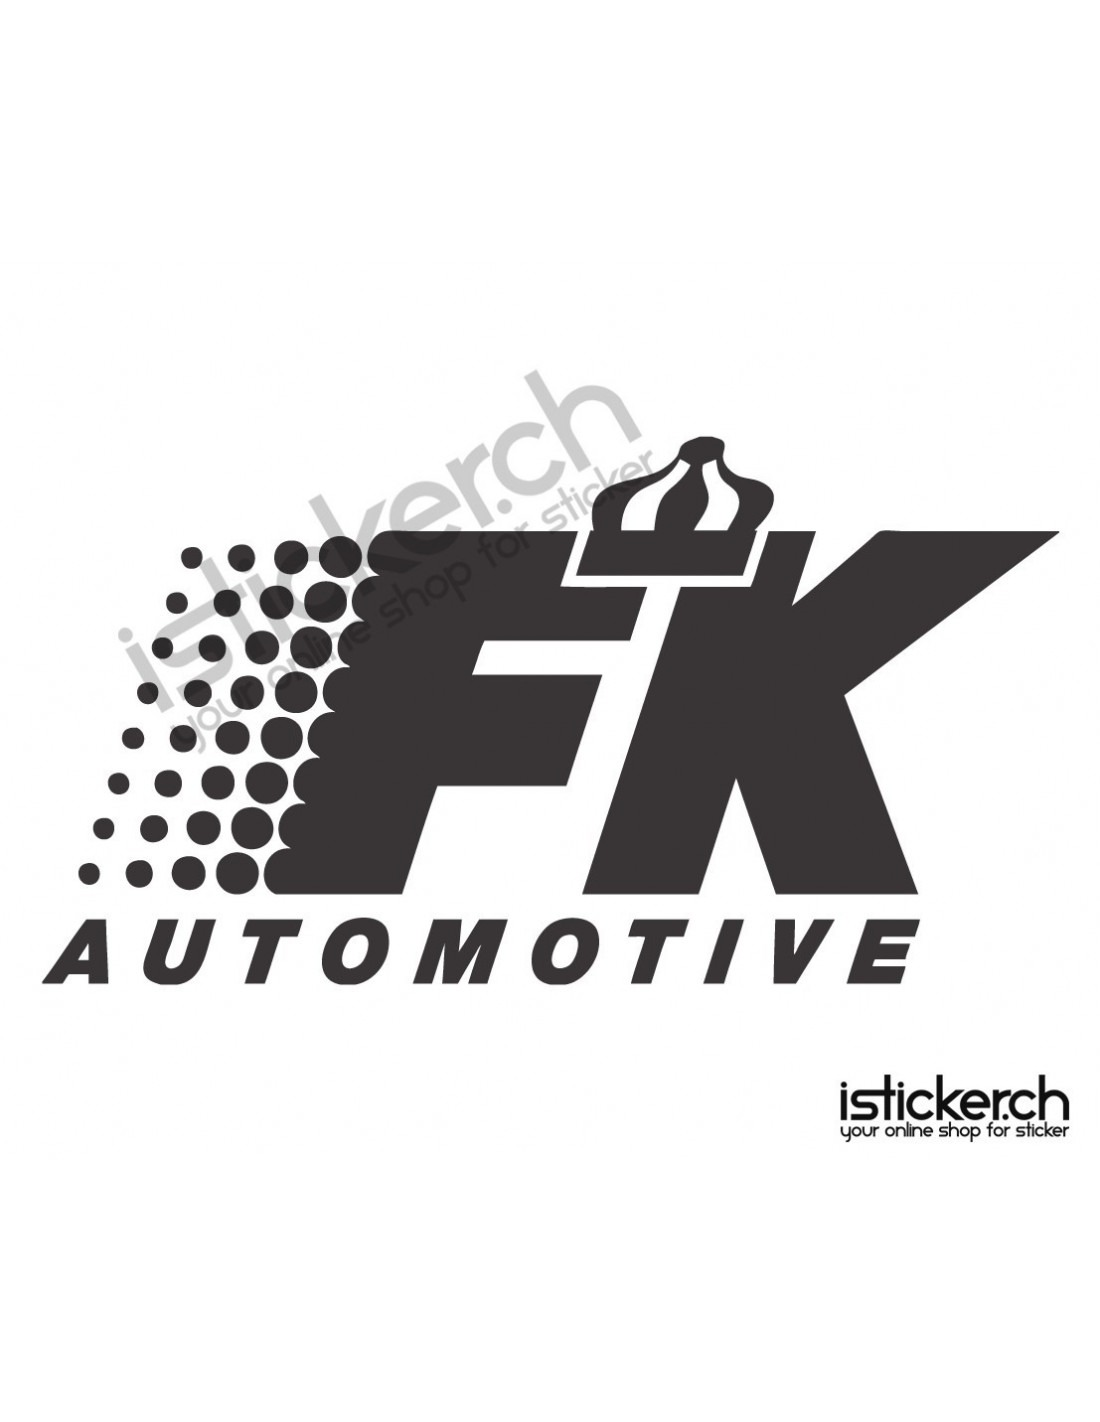 fk-automotive-logo-aufkleber.jpg